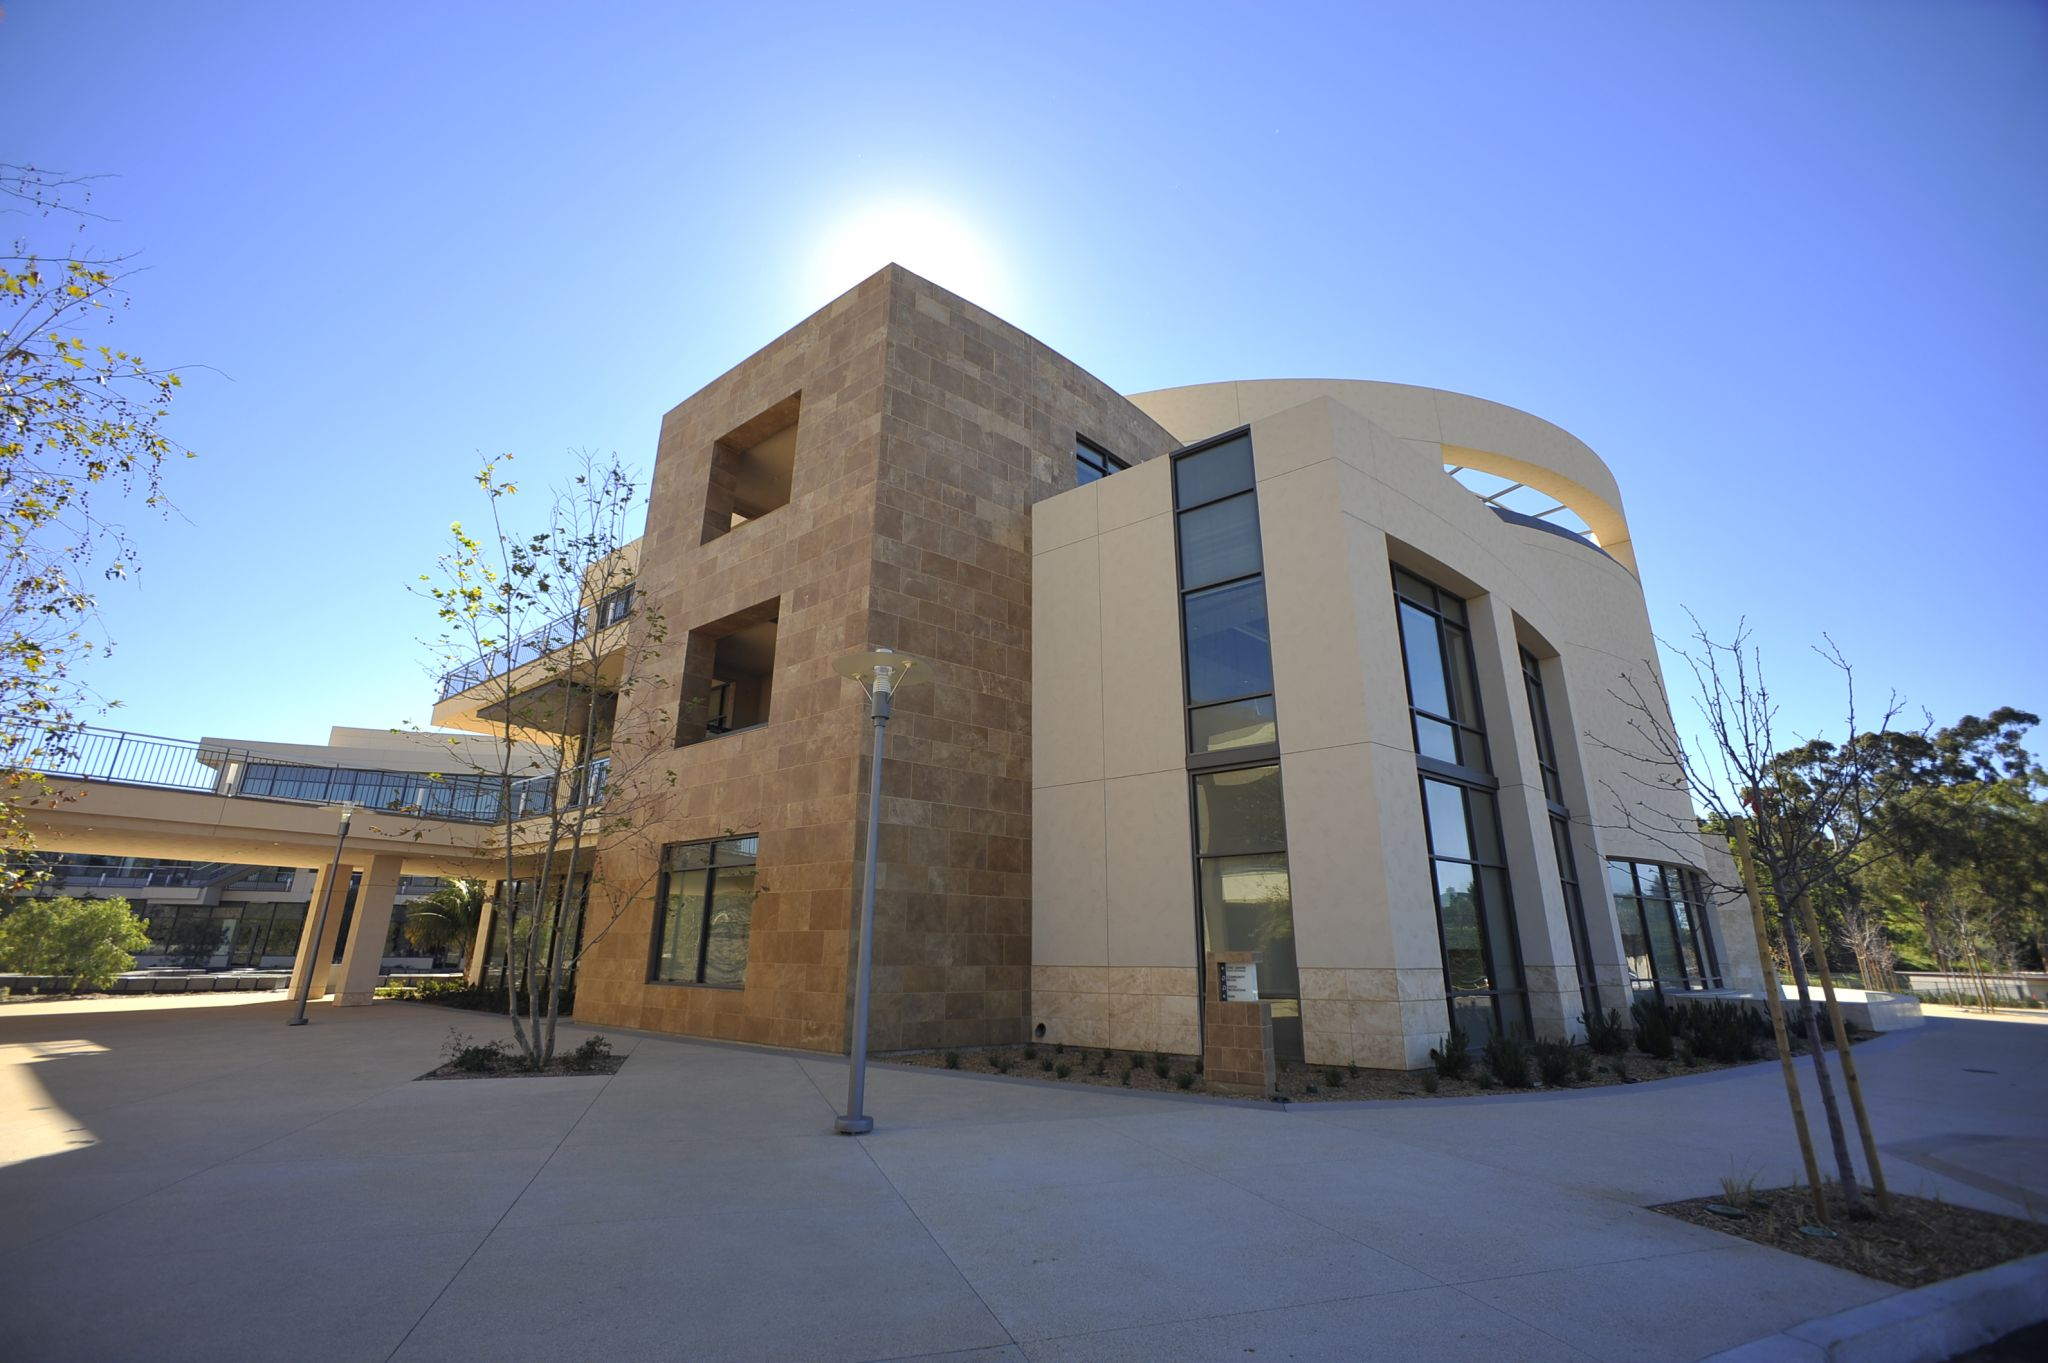 Investigating Eifs Performance Across Climates Exterior Insulation And Finishing Systems